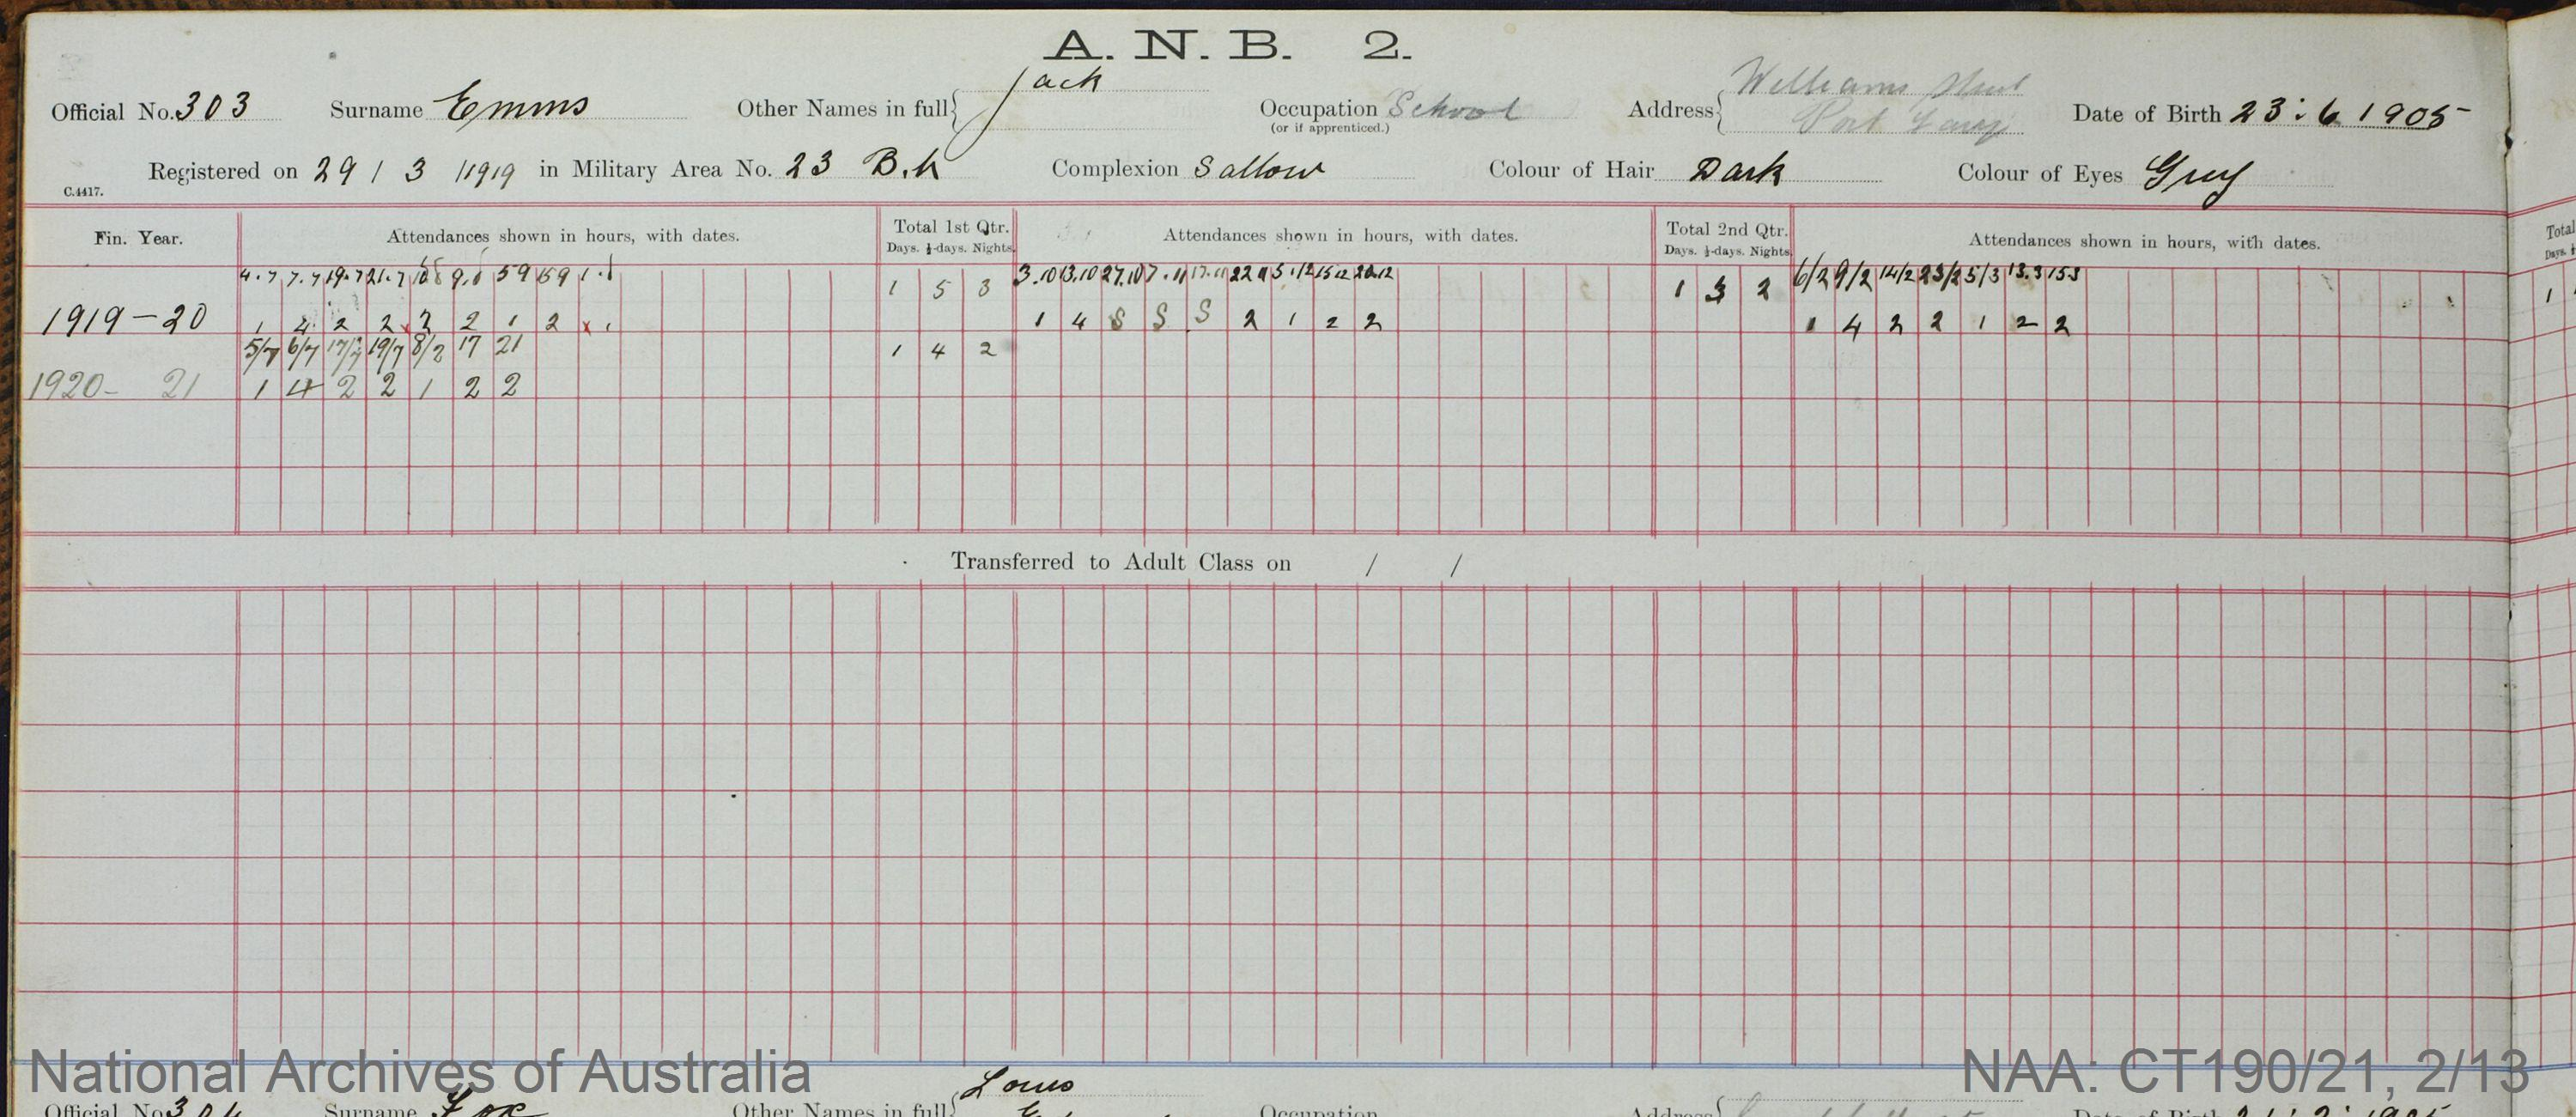 SURNAME - EMMS;  GIVEN NAME(S) - Jack;  OFFICIAL NUMBER - 303;  DATE OF BIRTH - 23 June 1905;  PLACE OF BIRTH - [Unknown];  NEXT OF KIN - [Unknown] ;  SERVICE/STATION - Port Fairy;  REGISTRATION DATE - 29 March 1919